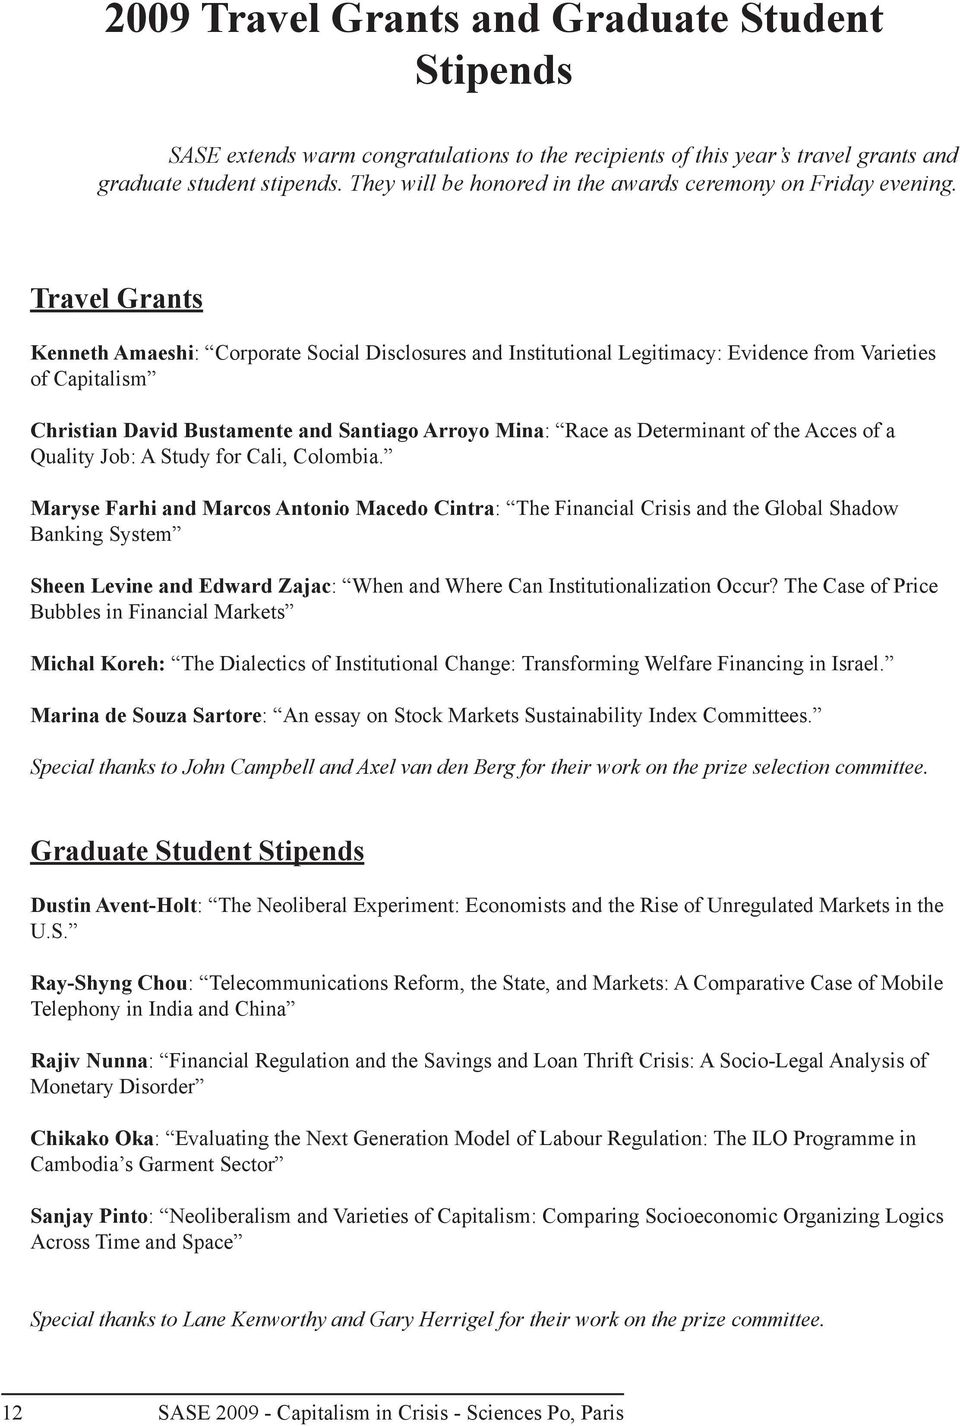 Travel Grants Kenneth Amaeshi: Corporate Social Disclosures and Institutional Legitimacy: Evidence from Varieties of Capitalism Christian David Bustamente and Santiago Arroyo Mina: Race as